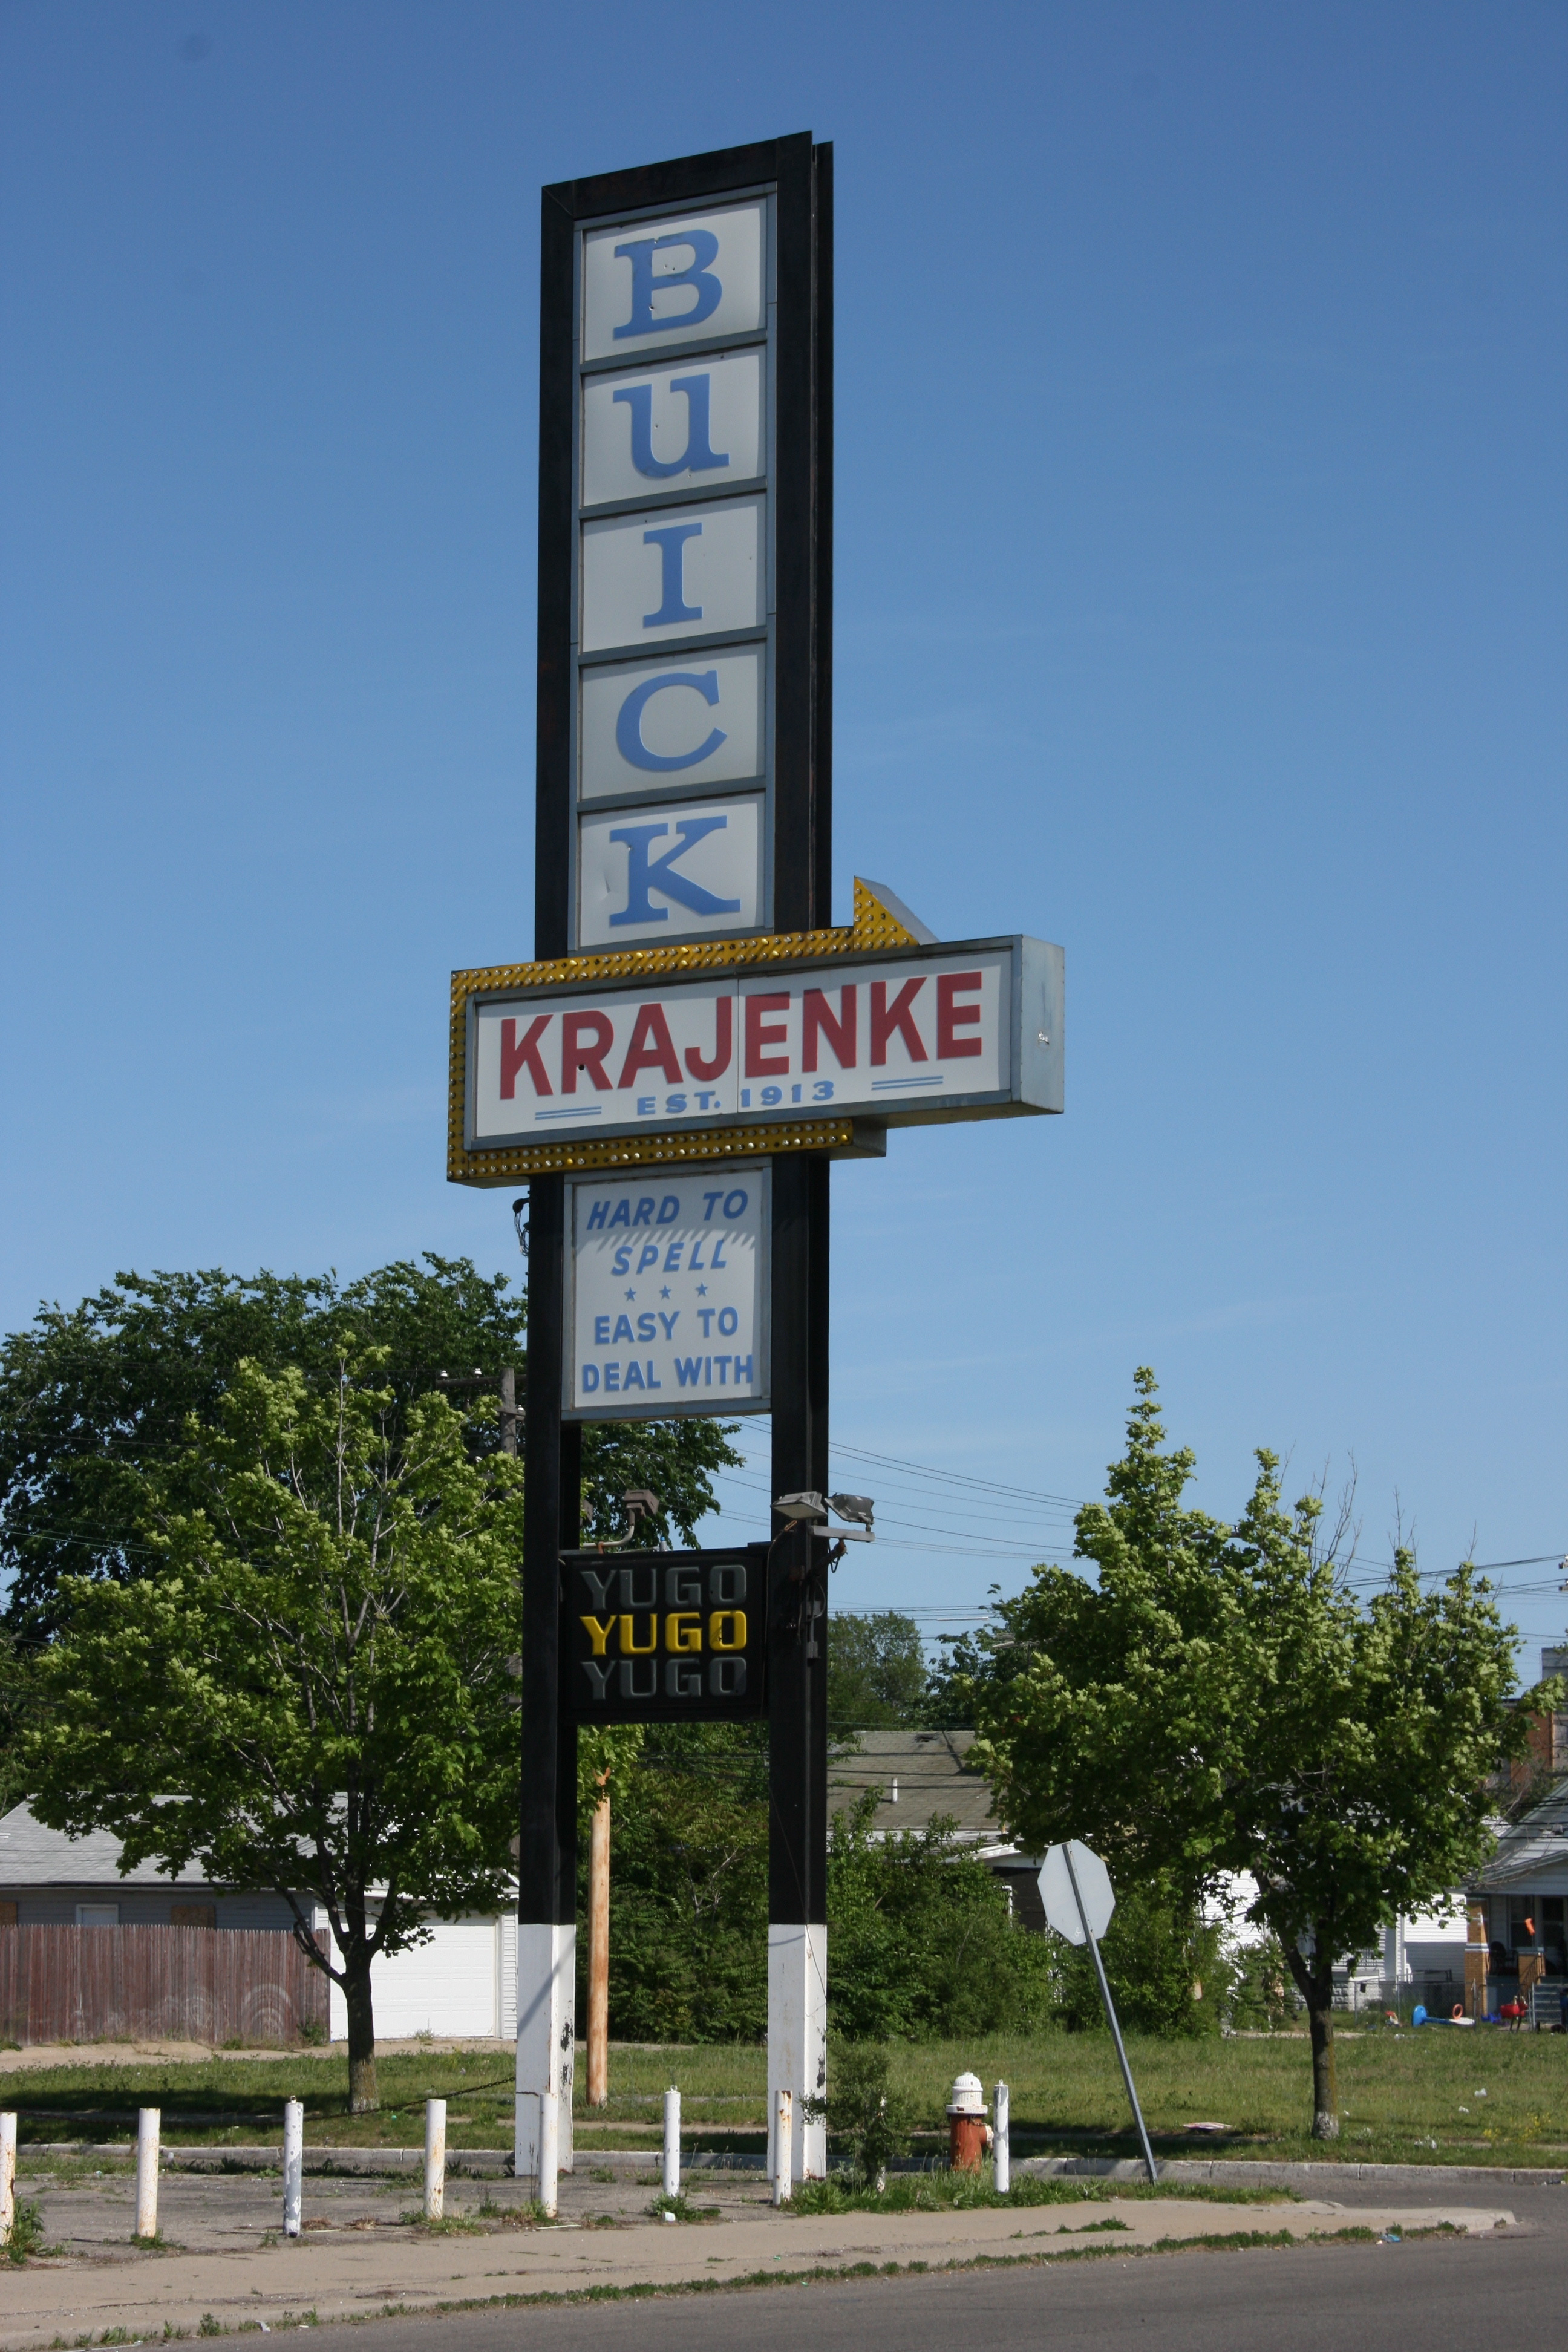 Krajenke Buick and Yugo, closed since 1992.